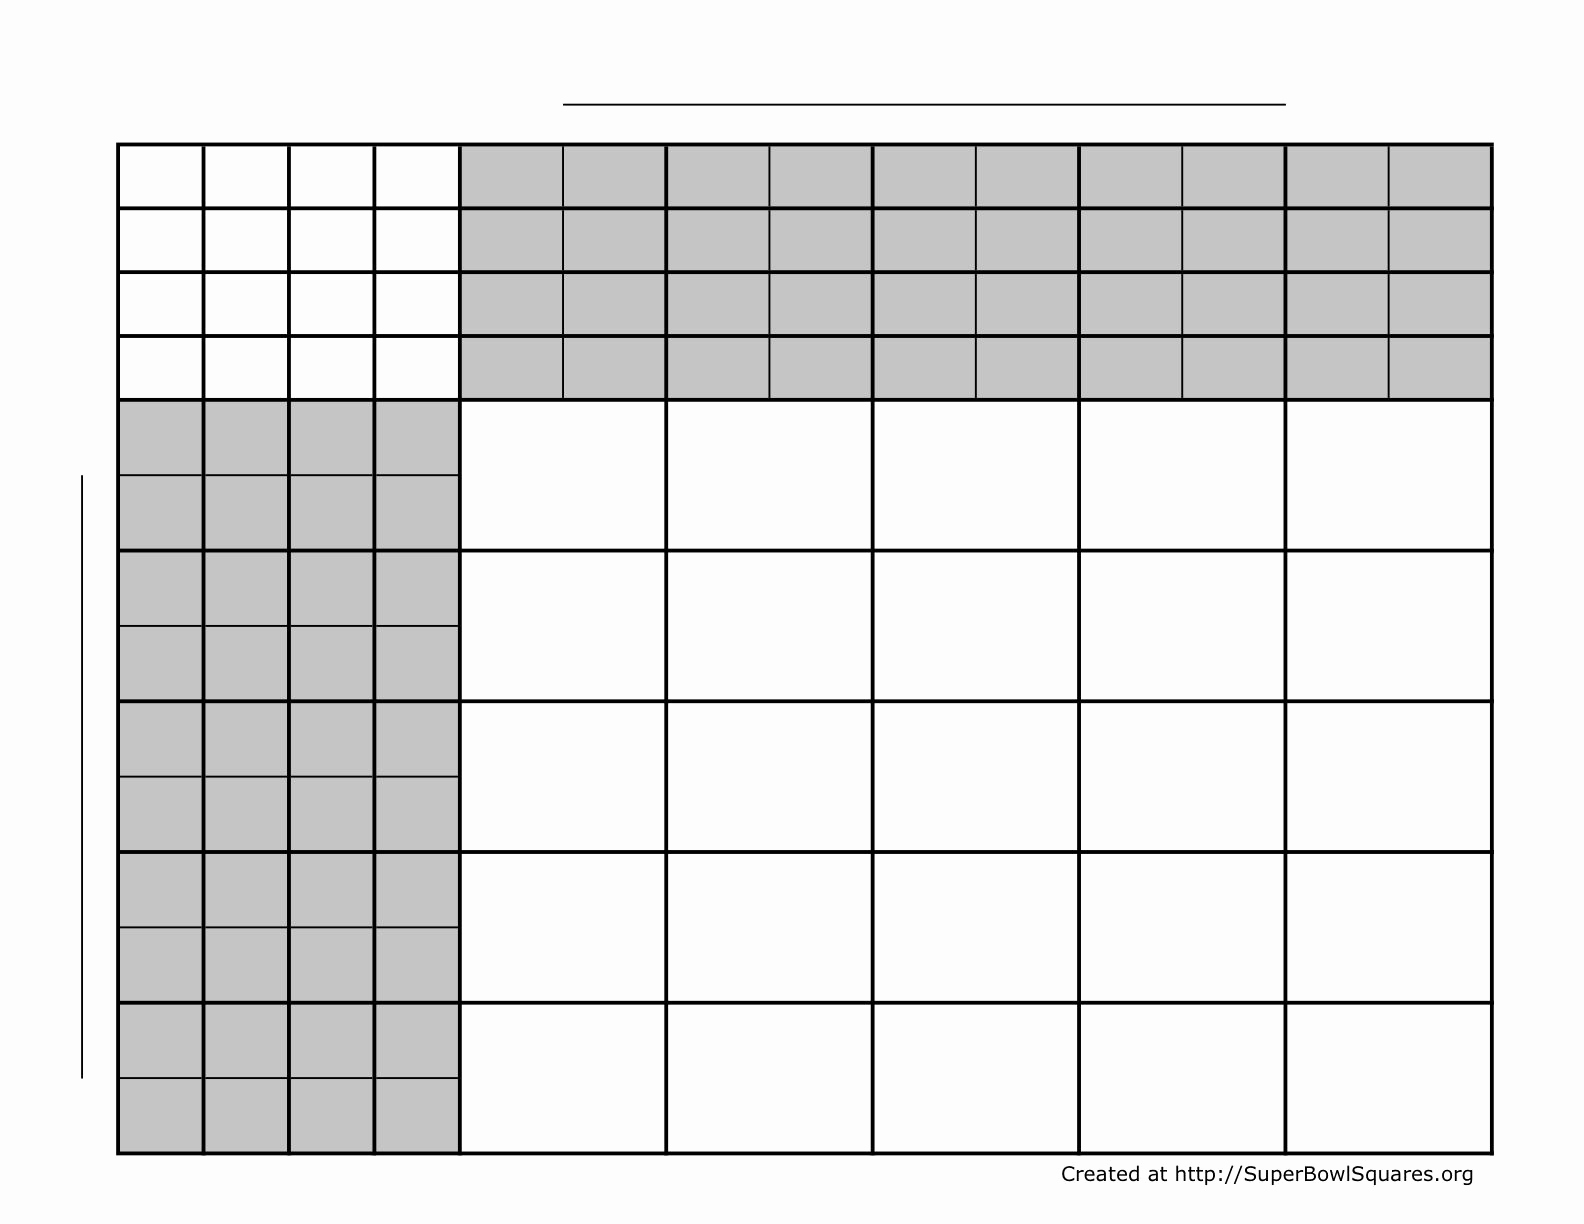 Super Bowl Squares Template Excel Inspirational Super Bowl Squares Template Excel Template Design